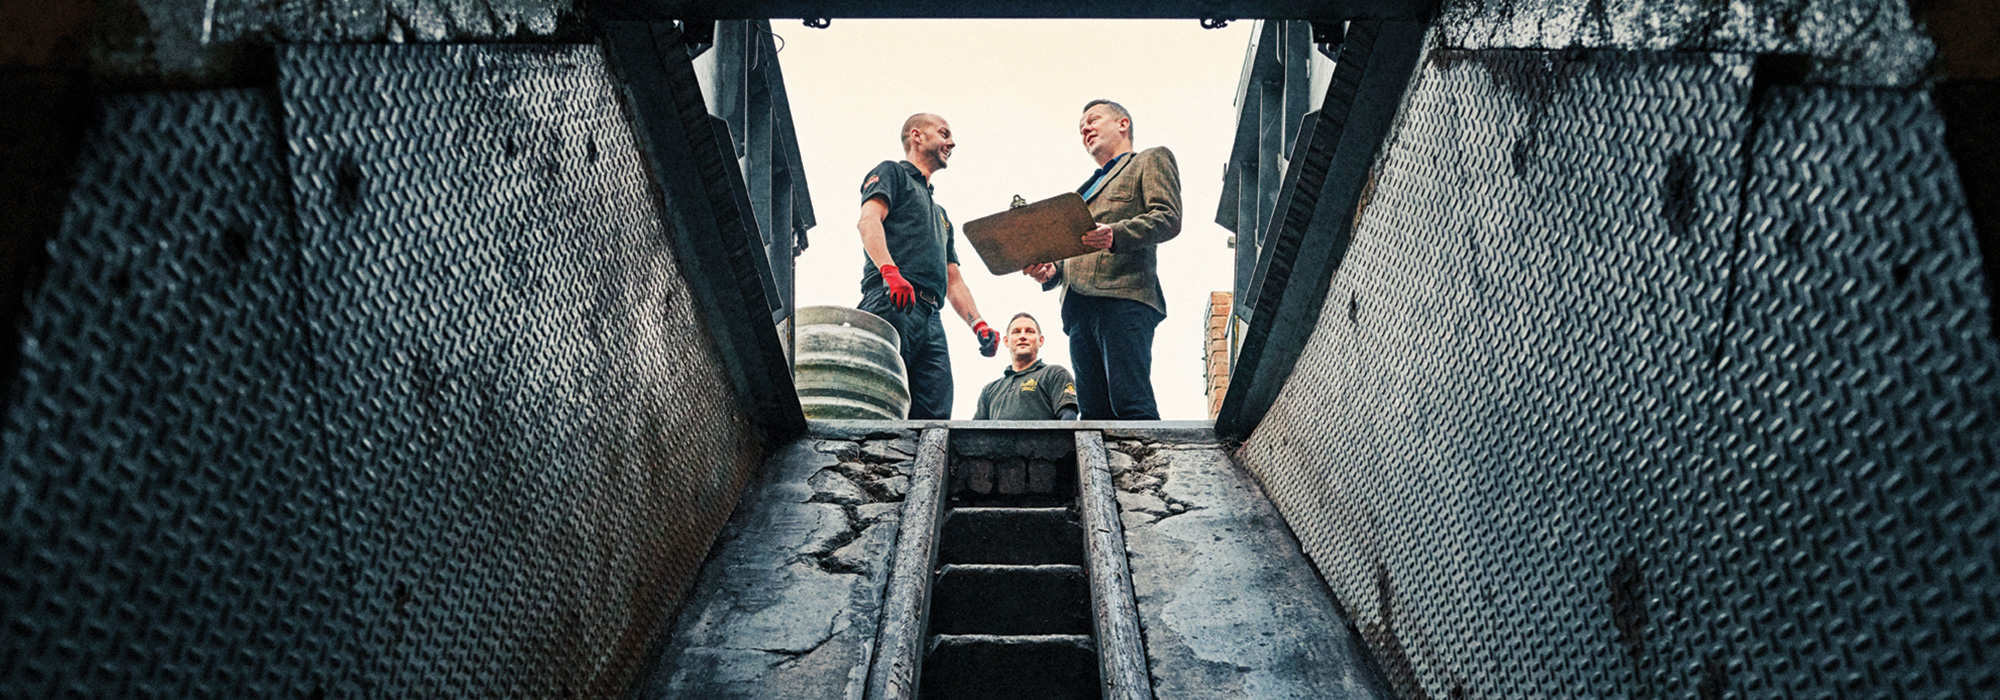 View from a pub cellar with a delivery man at the top of the stairs